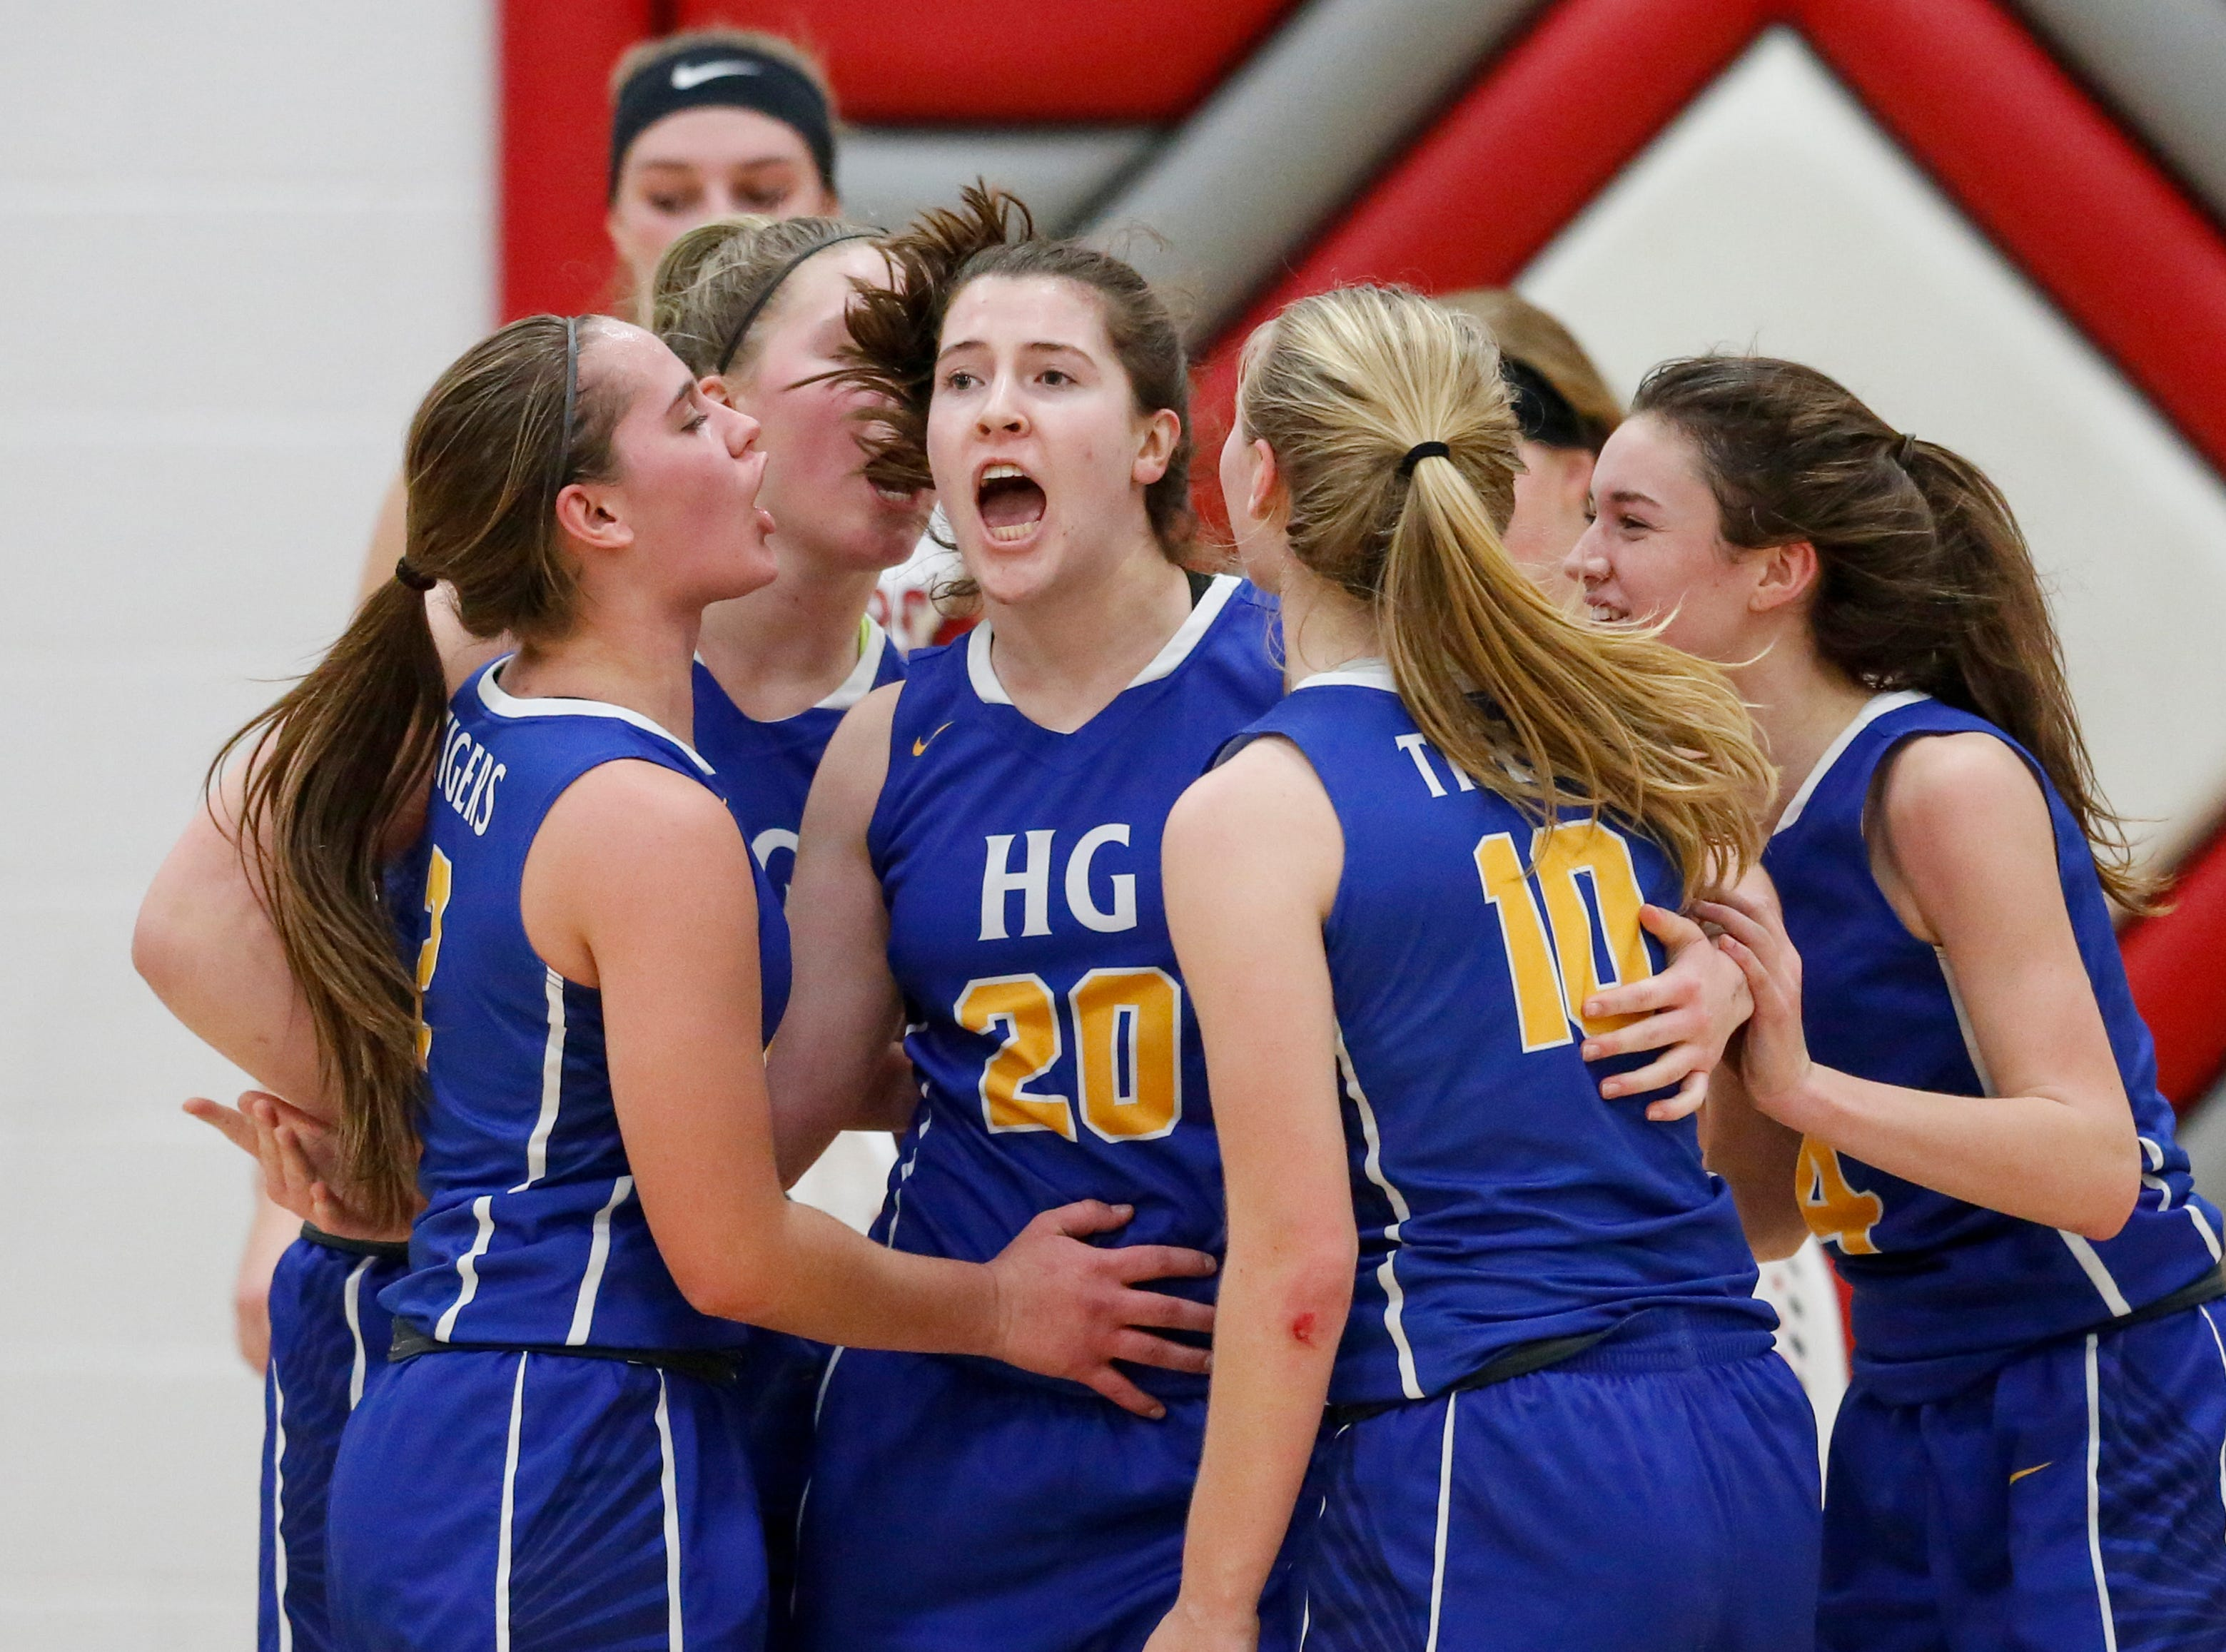 Howards Grove's Courtney Binversie reacts after scoring against Manitowoc Lutheran at Manitowoc Lutheran High School Tuesday, December 18, 2018, in Manitowoc, Wis. Joshua Clark/USA TODAY NETWORK-Wisconsin